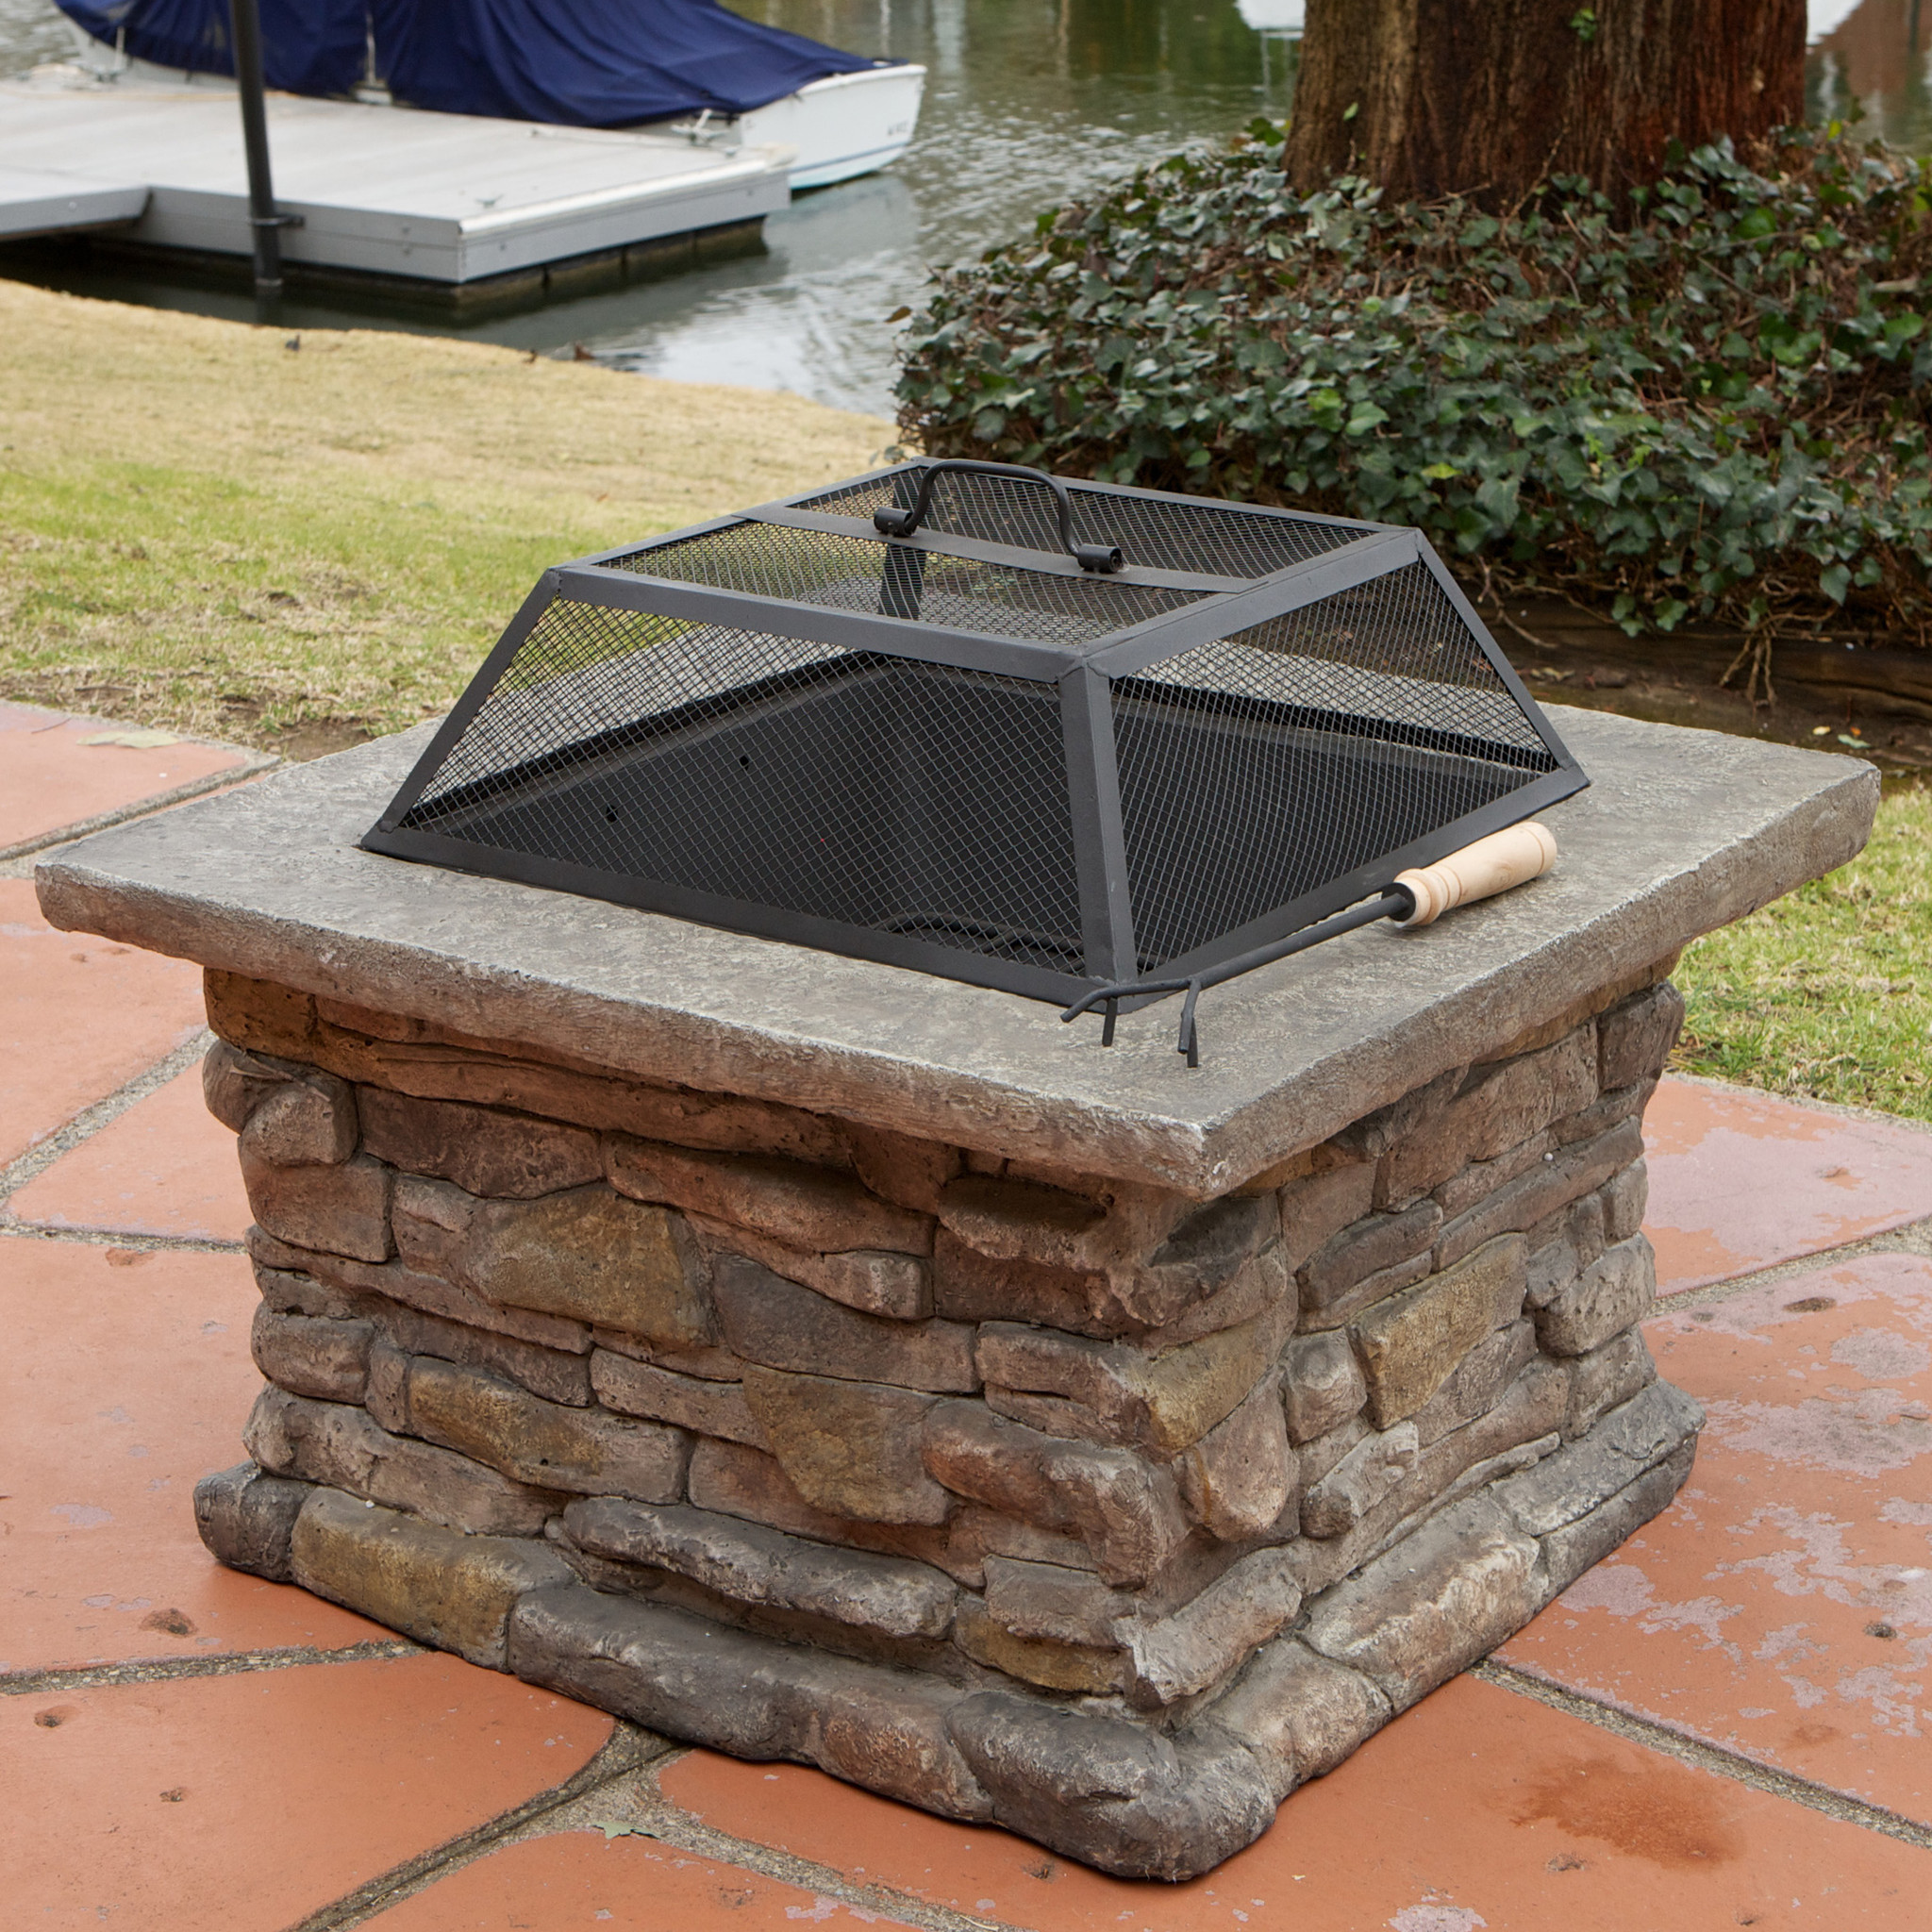 Applachian Square Firepit by NFusion